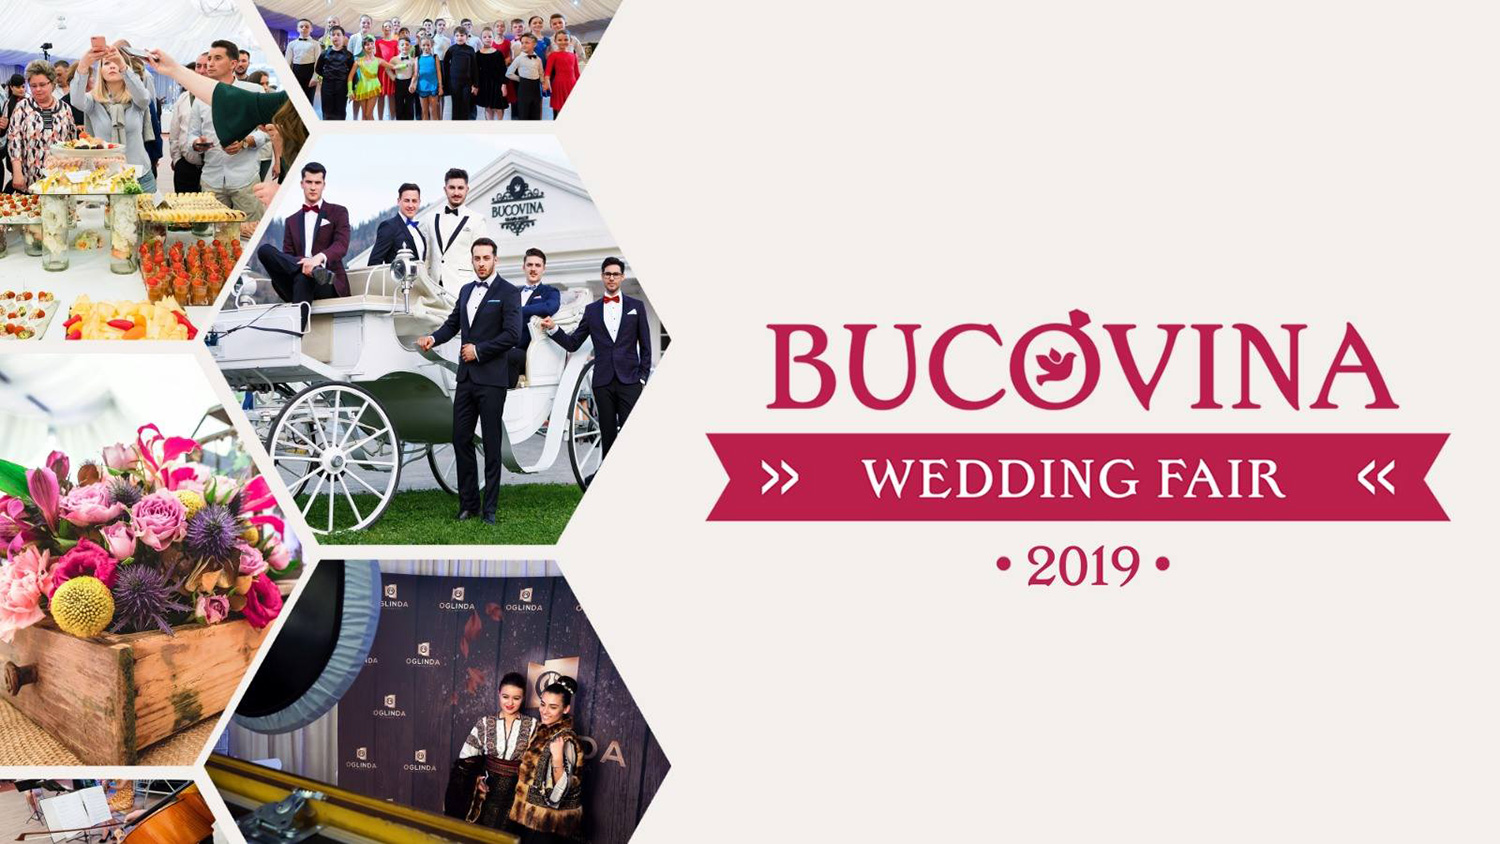 Bucovina Wedding Fair